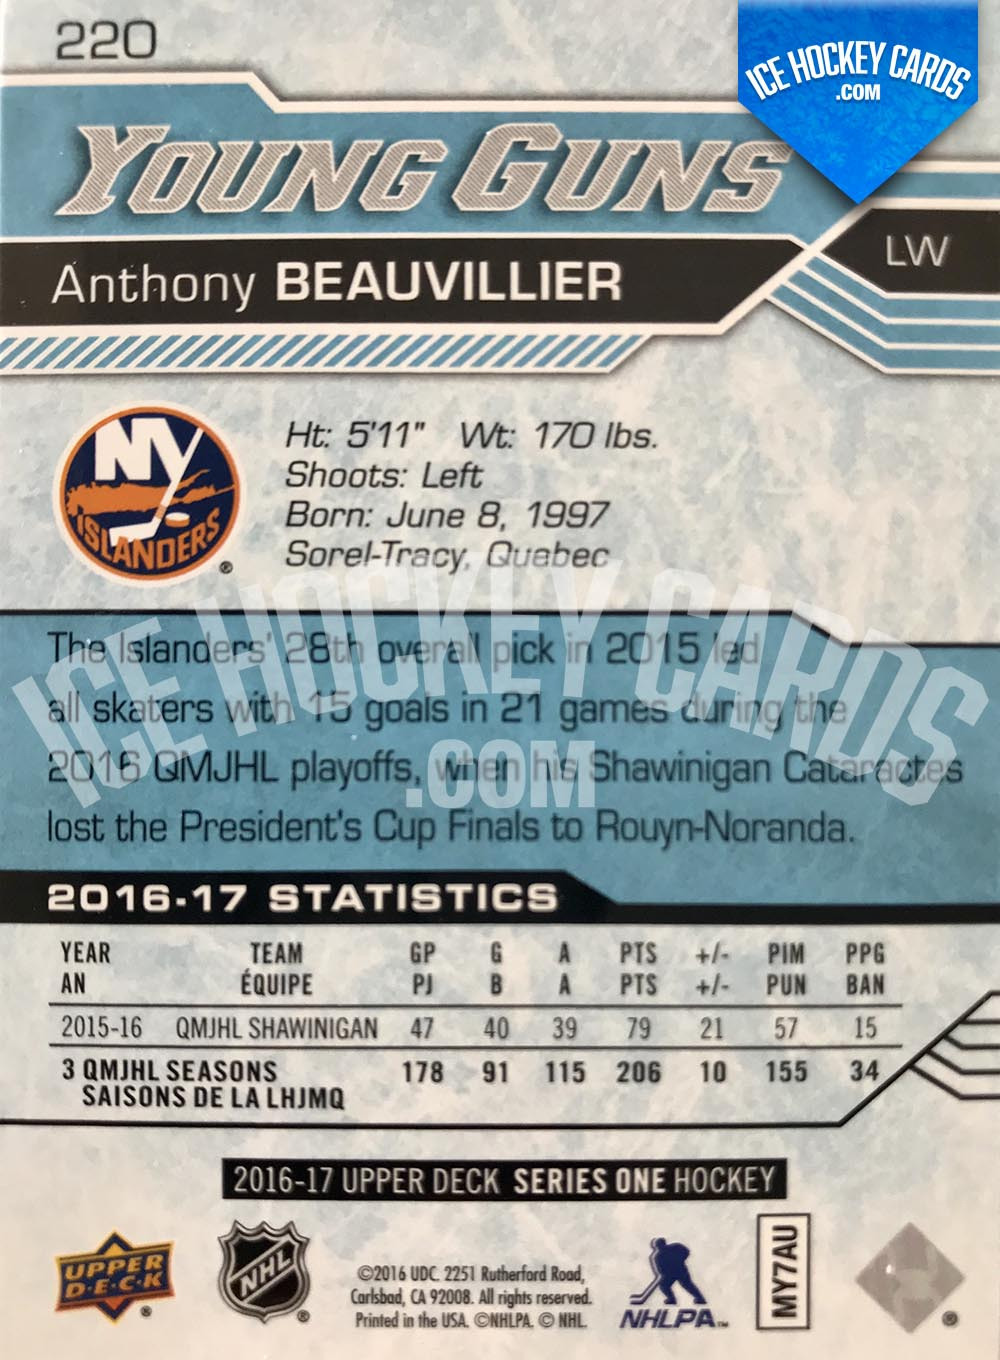 Upper Deck - Series 2016-17 - Anthony Beauvillier Young Guns Rookie Card back